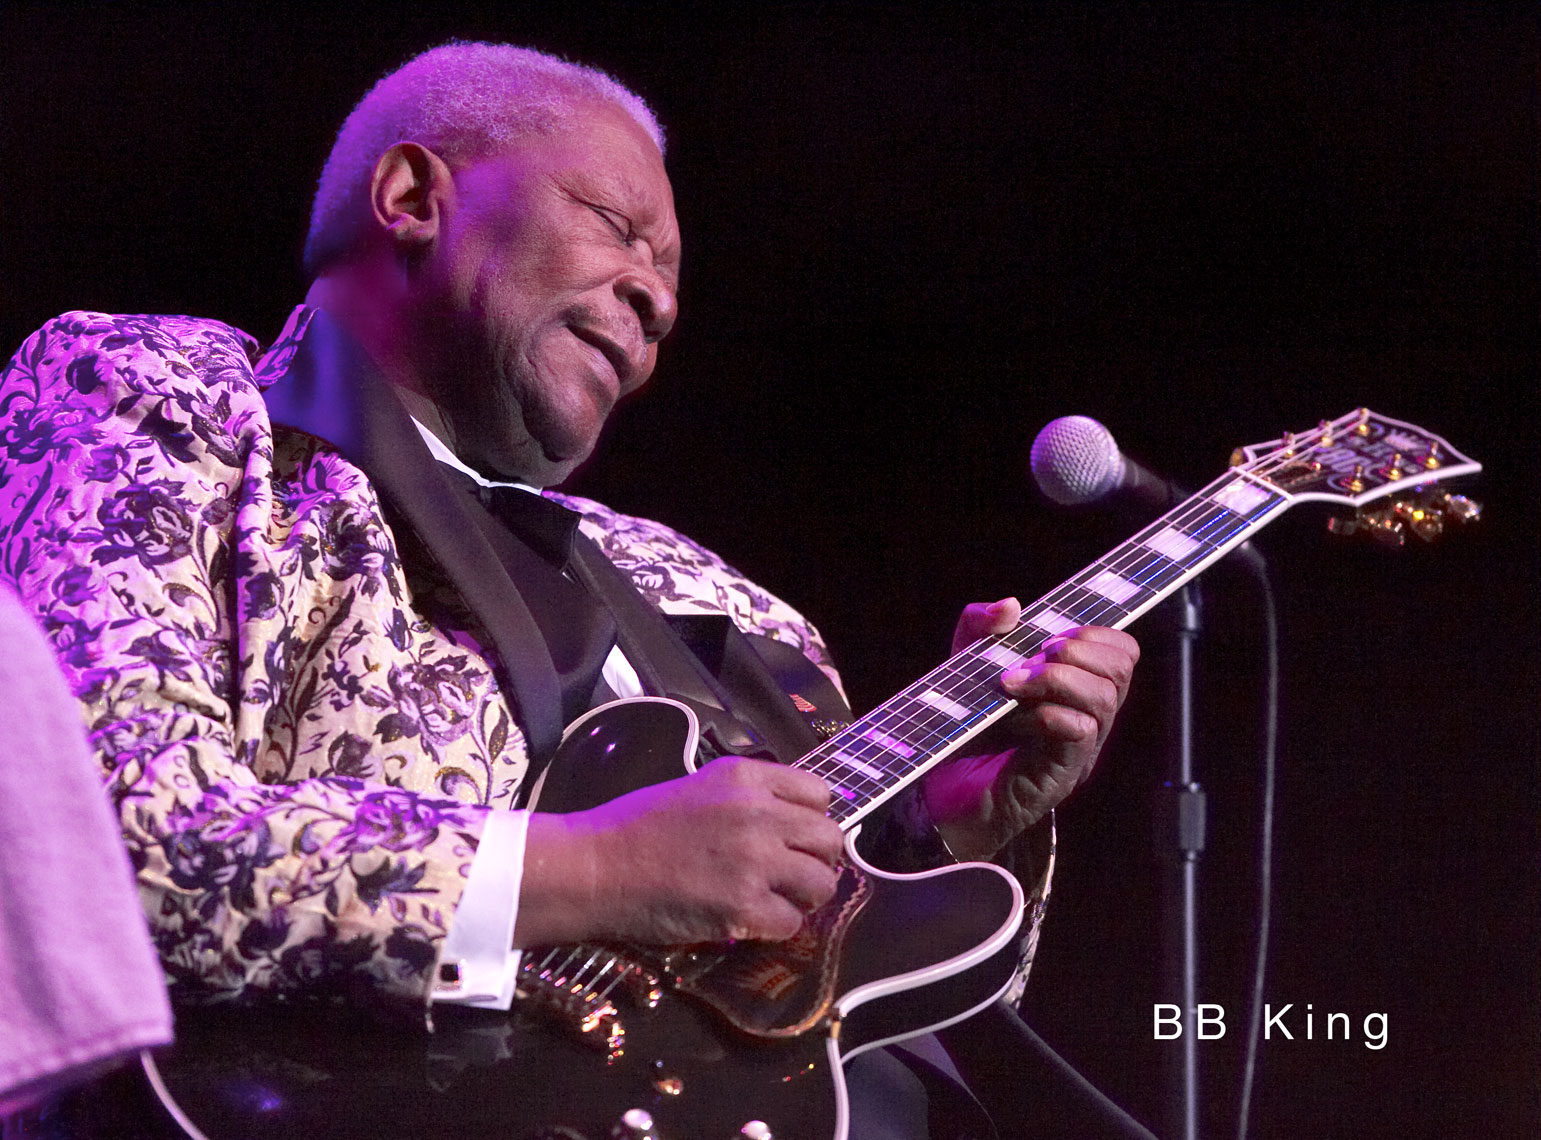 BB King/concert/Mystic Lake Casino/lifestyle photo